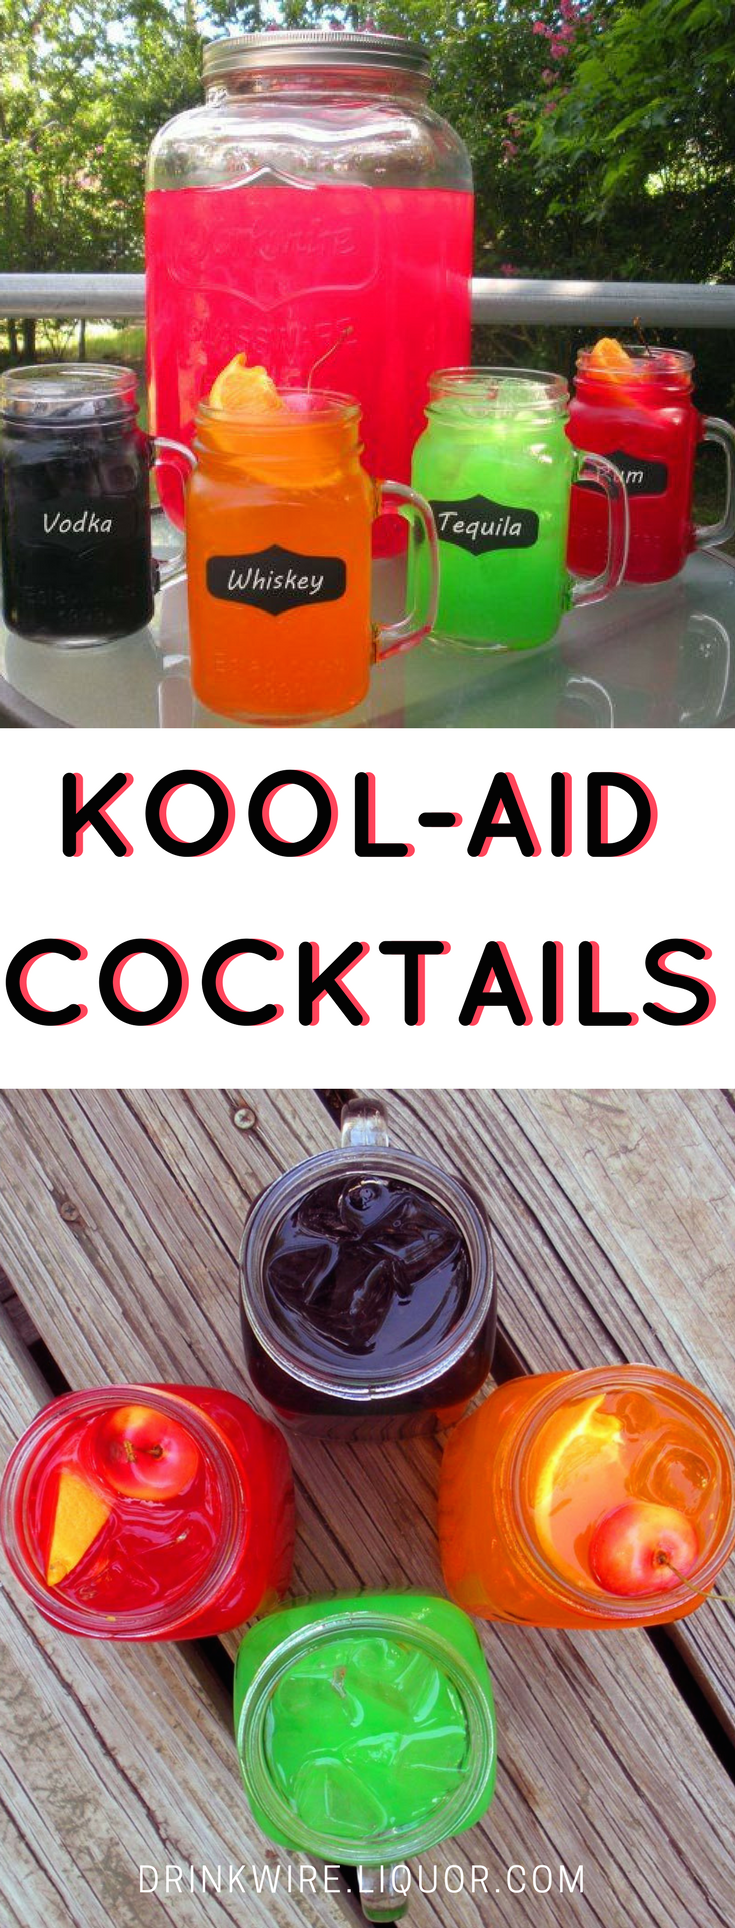 Love Jell-O Shots? You Need This One Simple Recipe